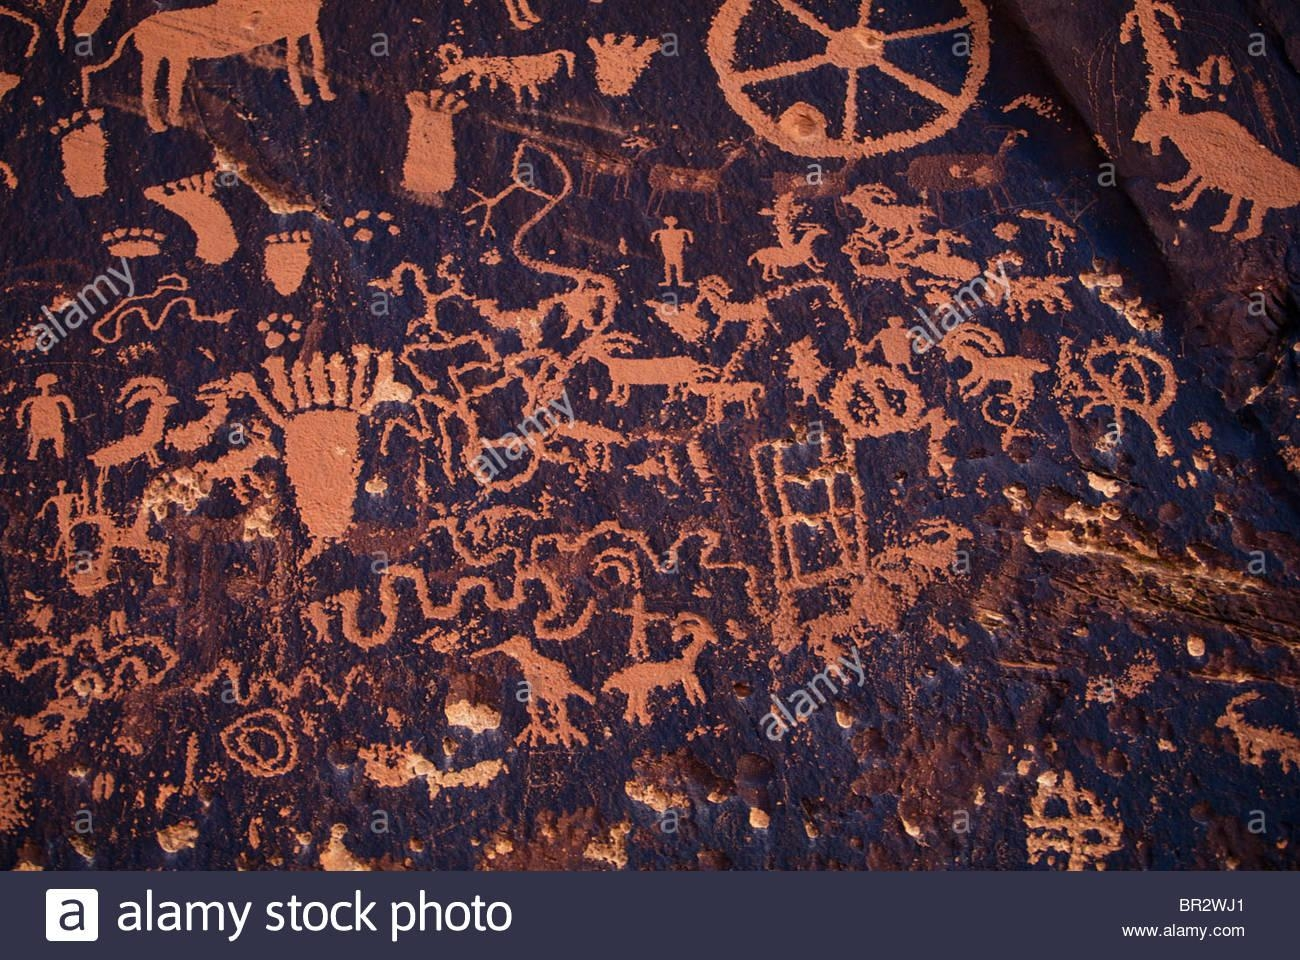 Native American Cave Art/wall Drawings Stock Photo, Royalty Free Pertaining To Native American Wall Art (Image 13 of 20)